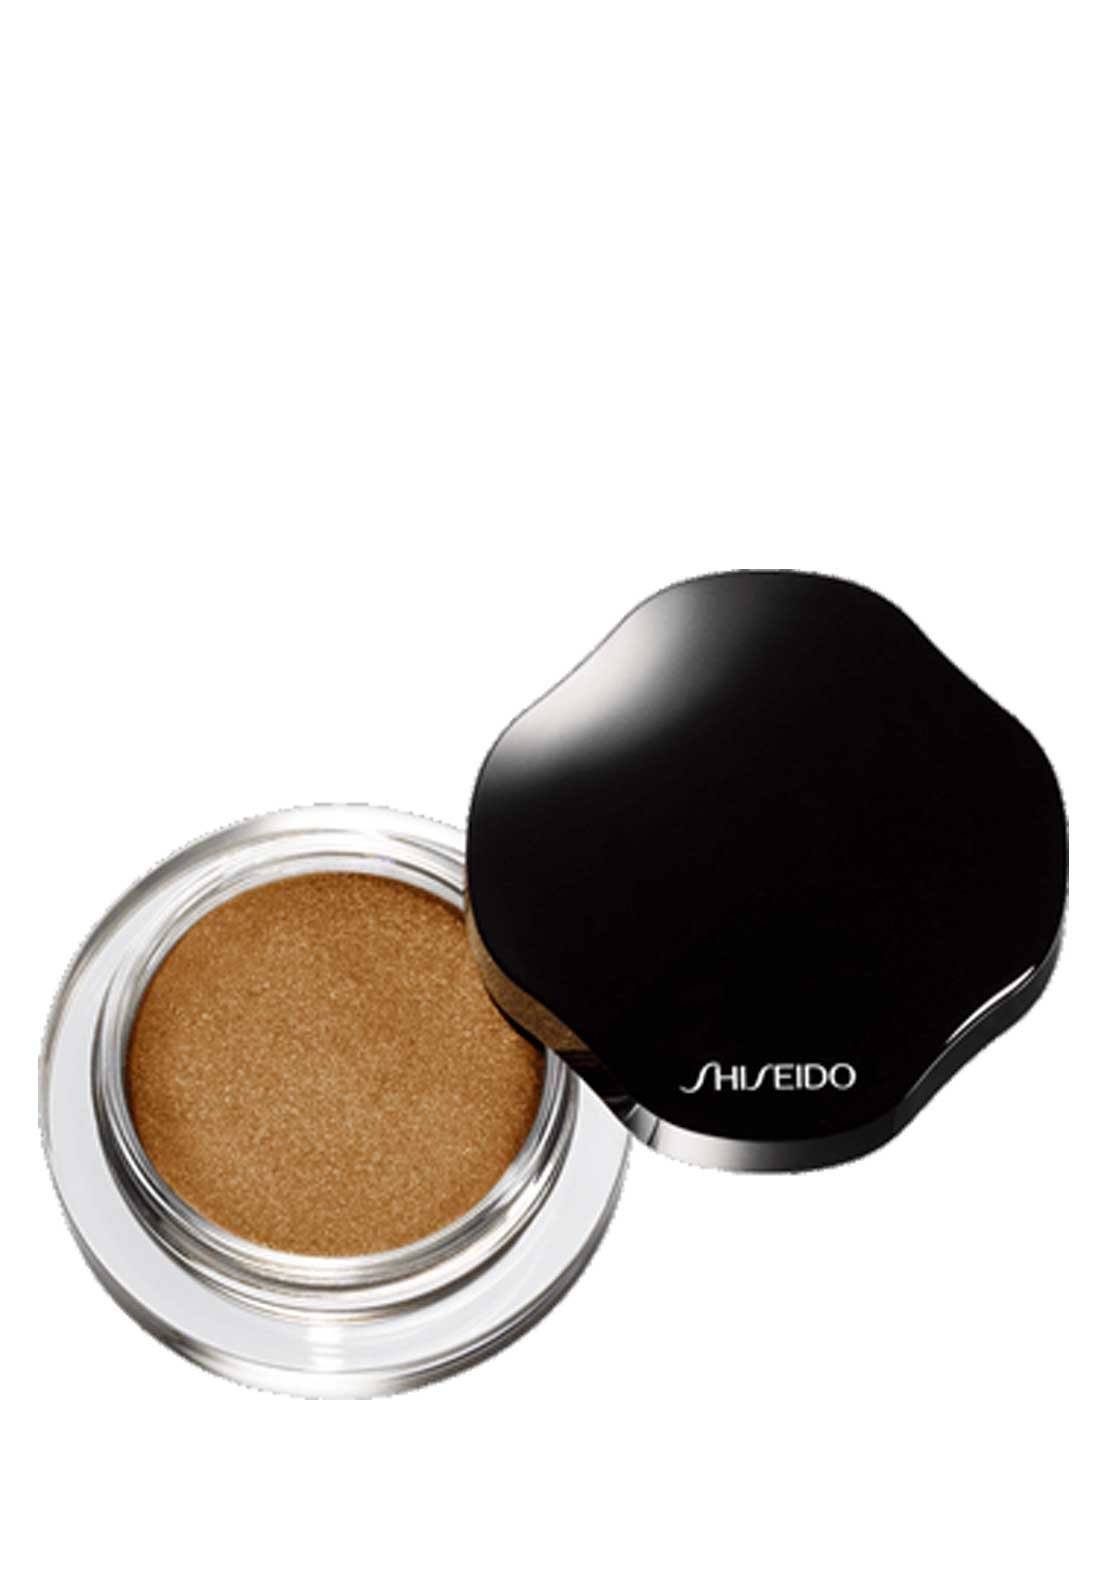 Shiseido Shimmering Cream Eye Shadow, BR329 Ochre